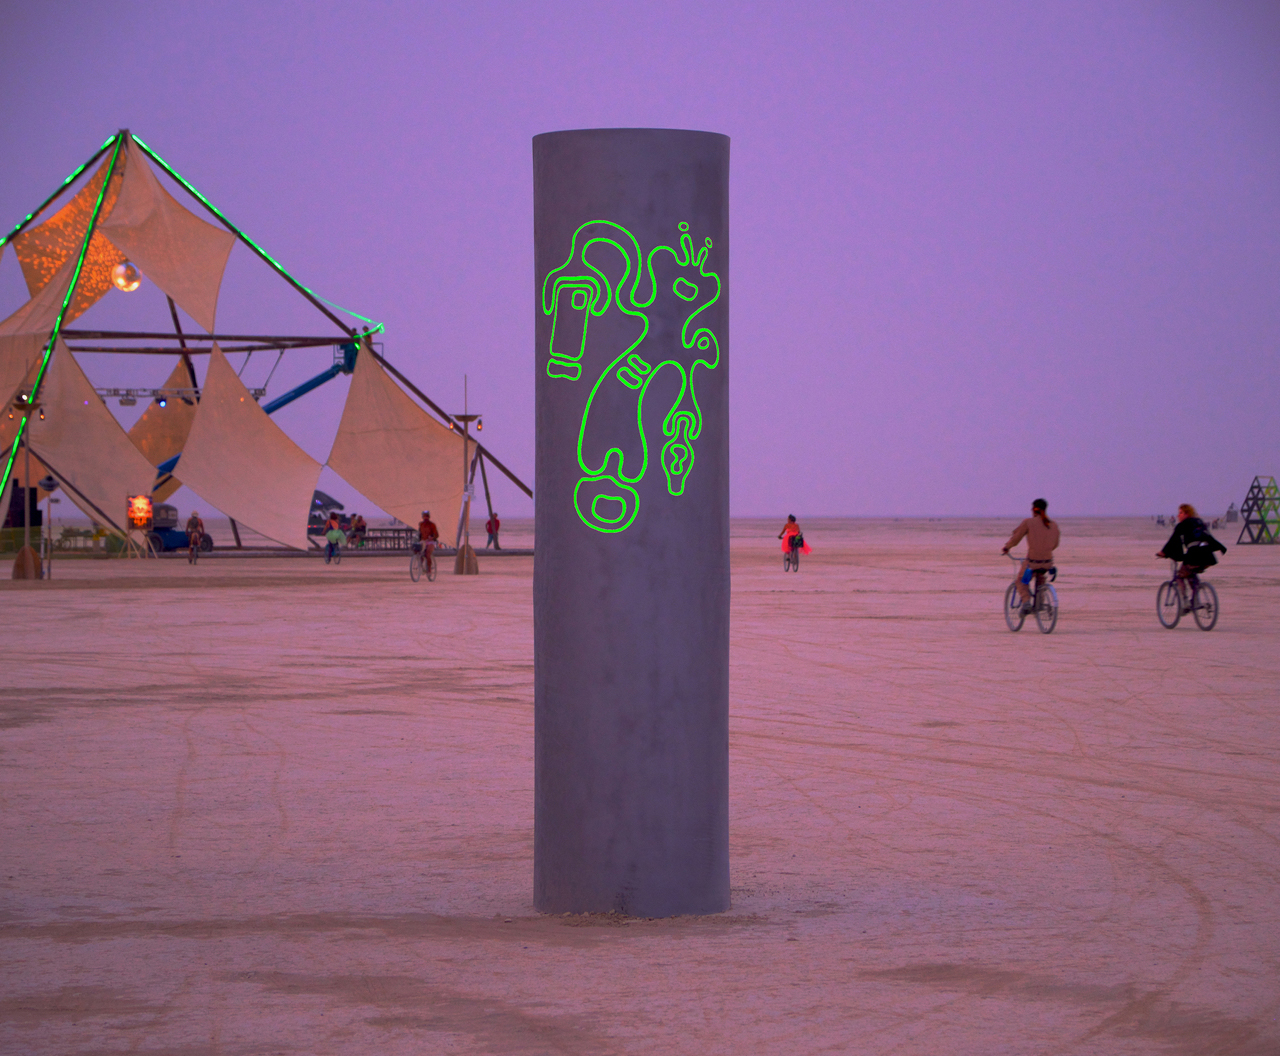 At Burning Man 2013 the color was a nickel silver to go along with that year's theme of Cargo Cult. We were happy with them and they looked awesome, but our new darker color allows the image stand out more during the day.